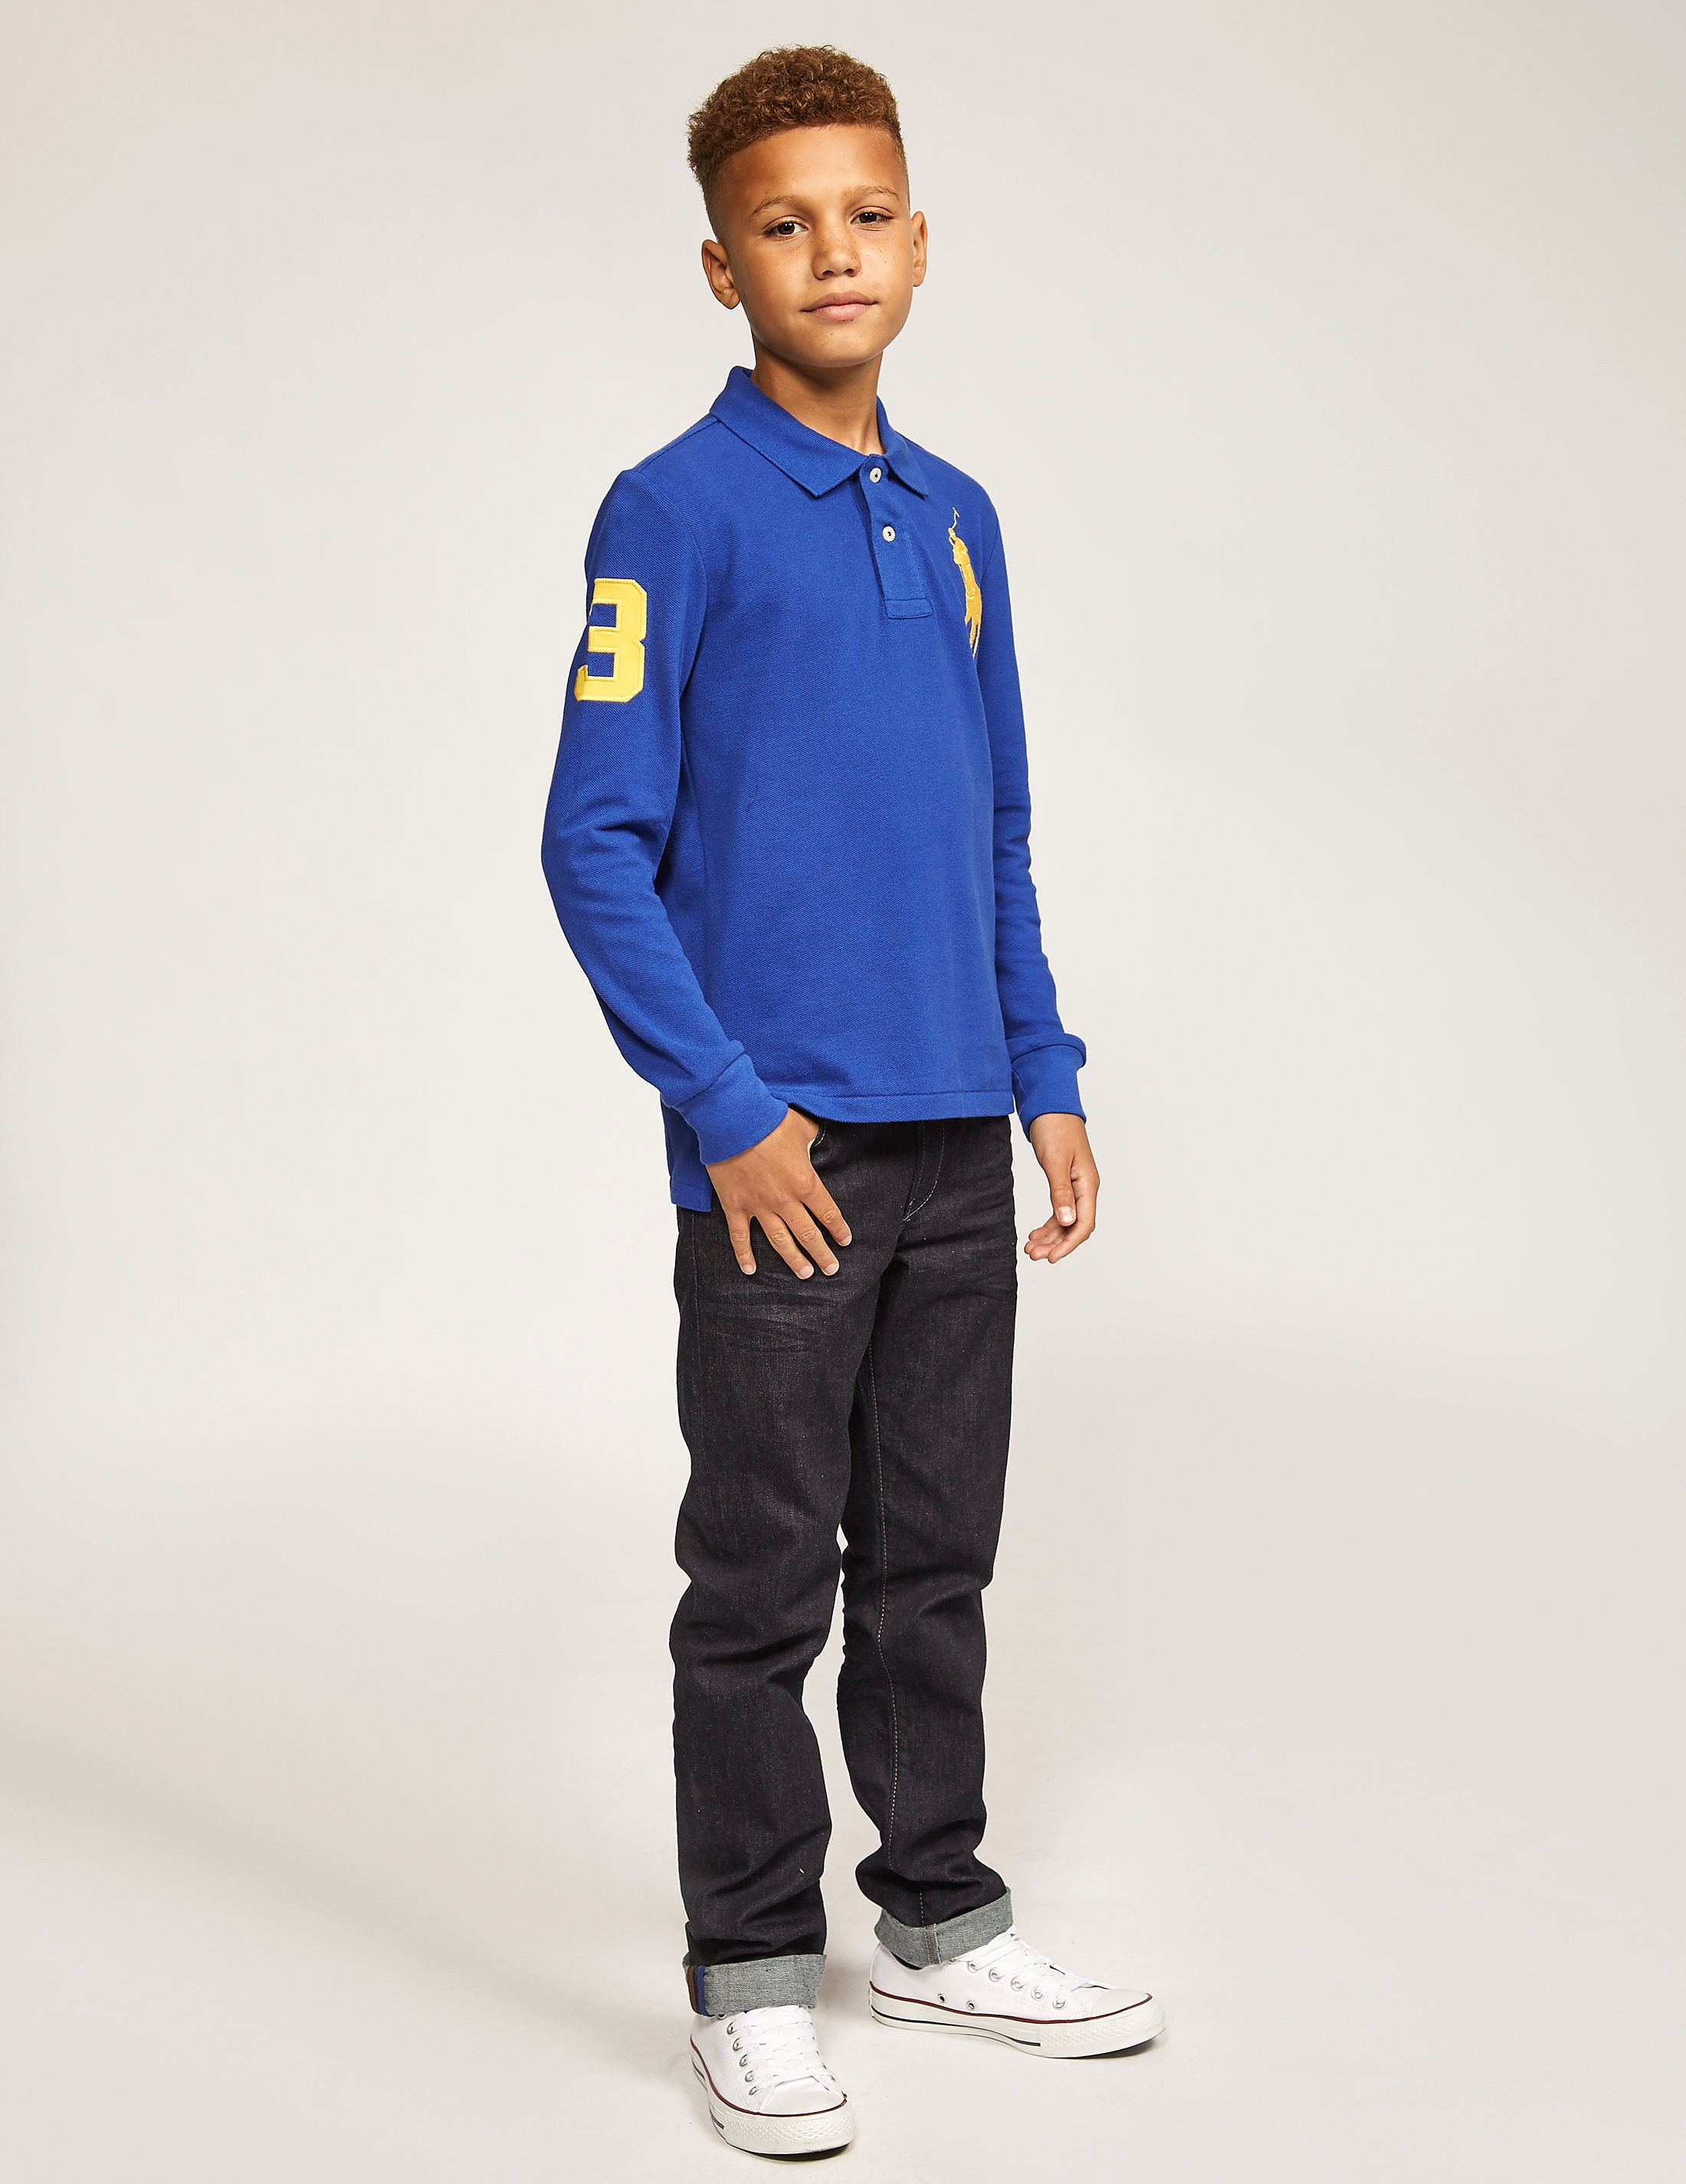 Polo Ralph Lauren Boys' Custom Fit Long-Sleeved Polo Shirt